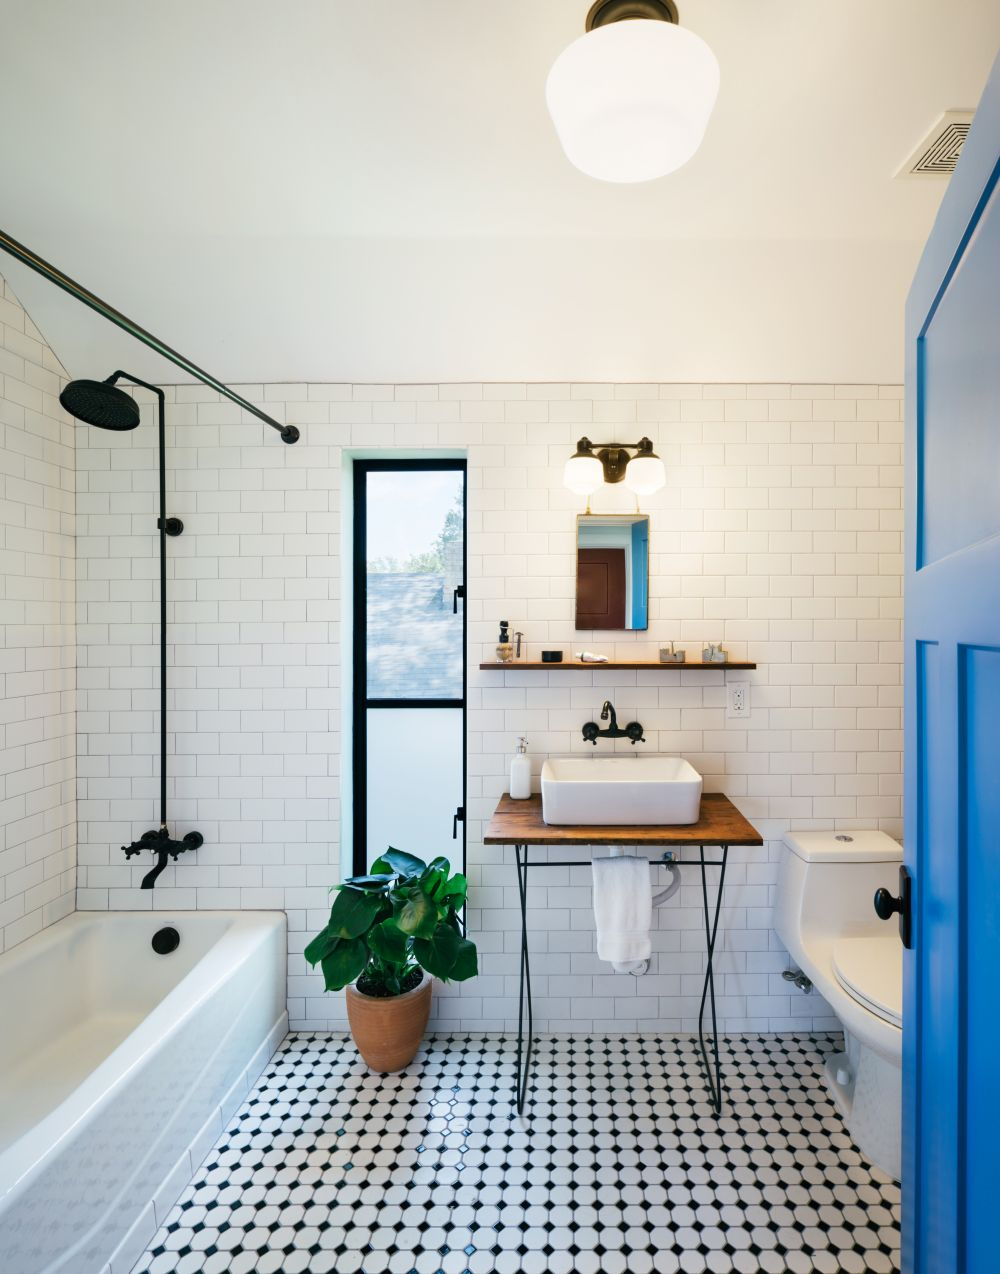 The subway tiles and give the bathroom walls a simple and elegant look